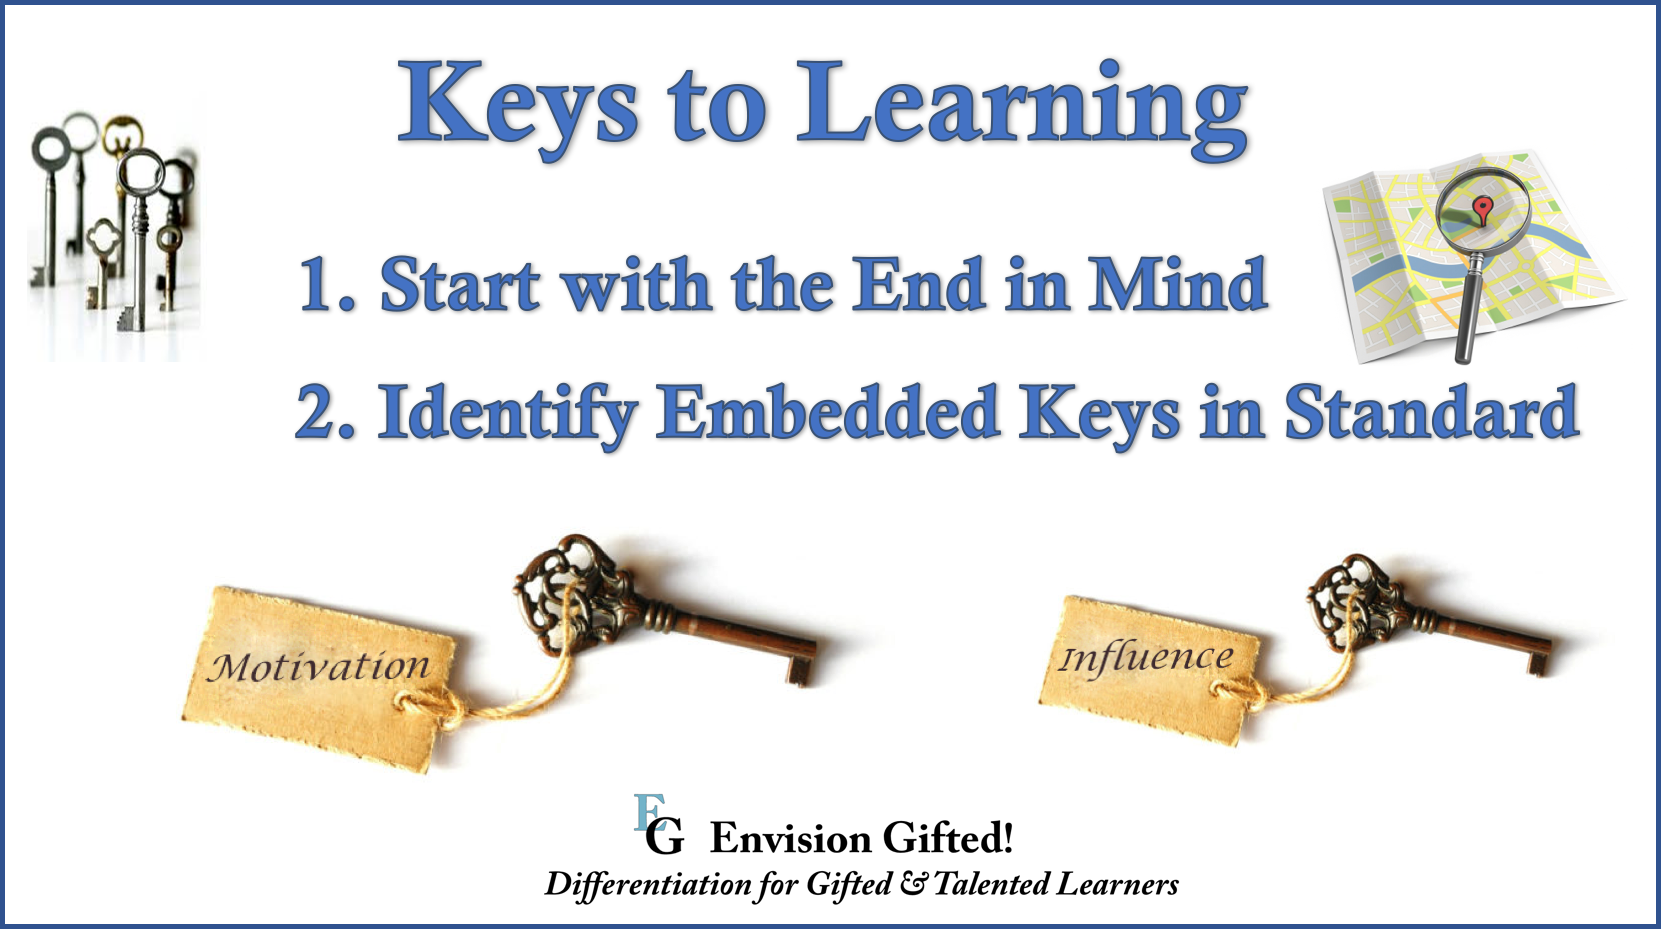 Envision Gifted. Keys Getting Started